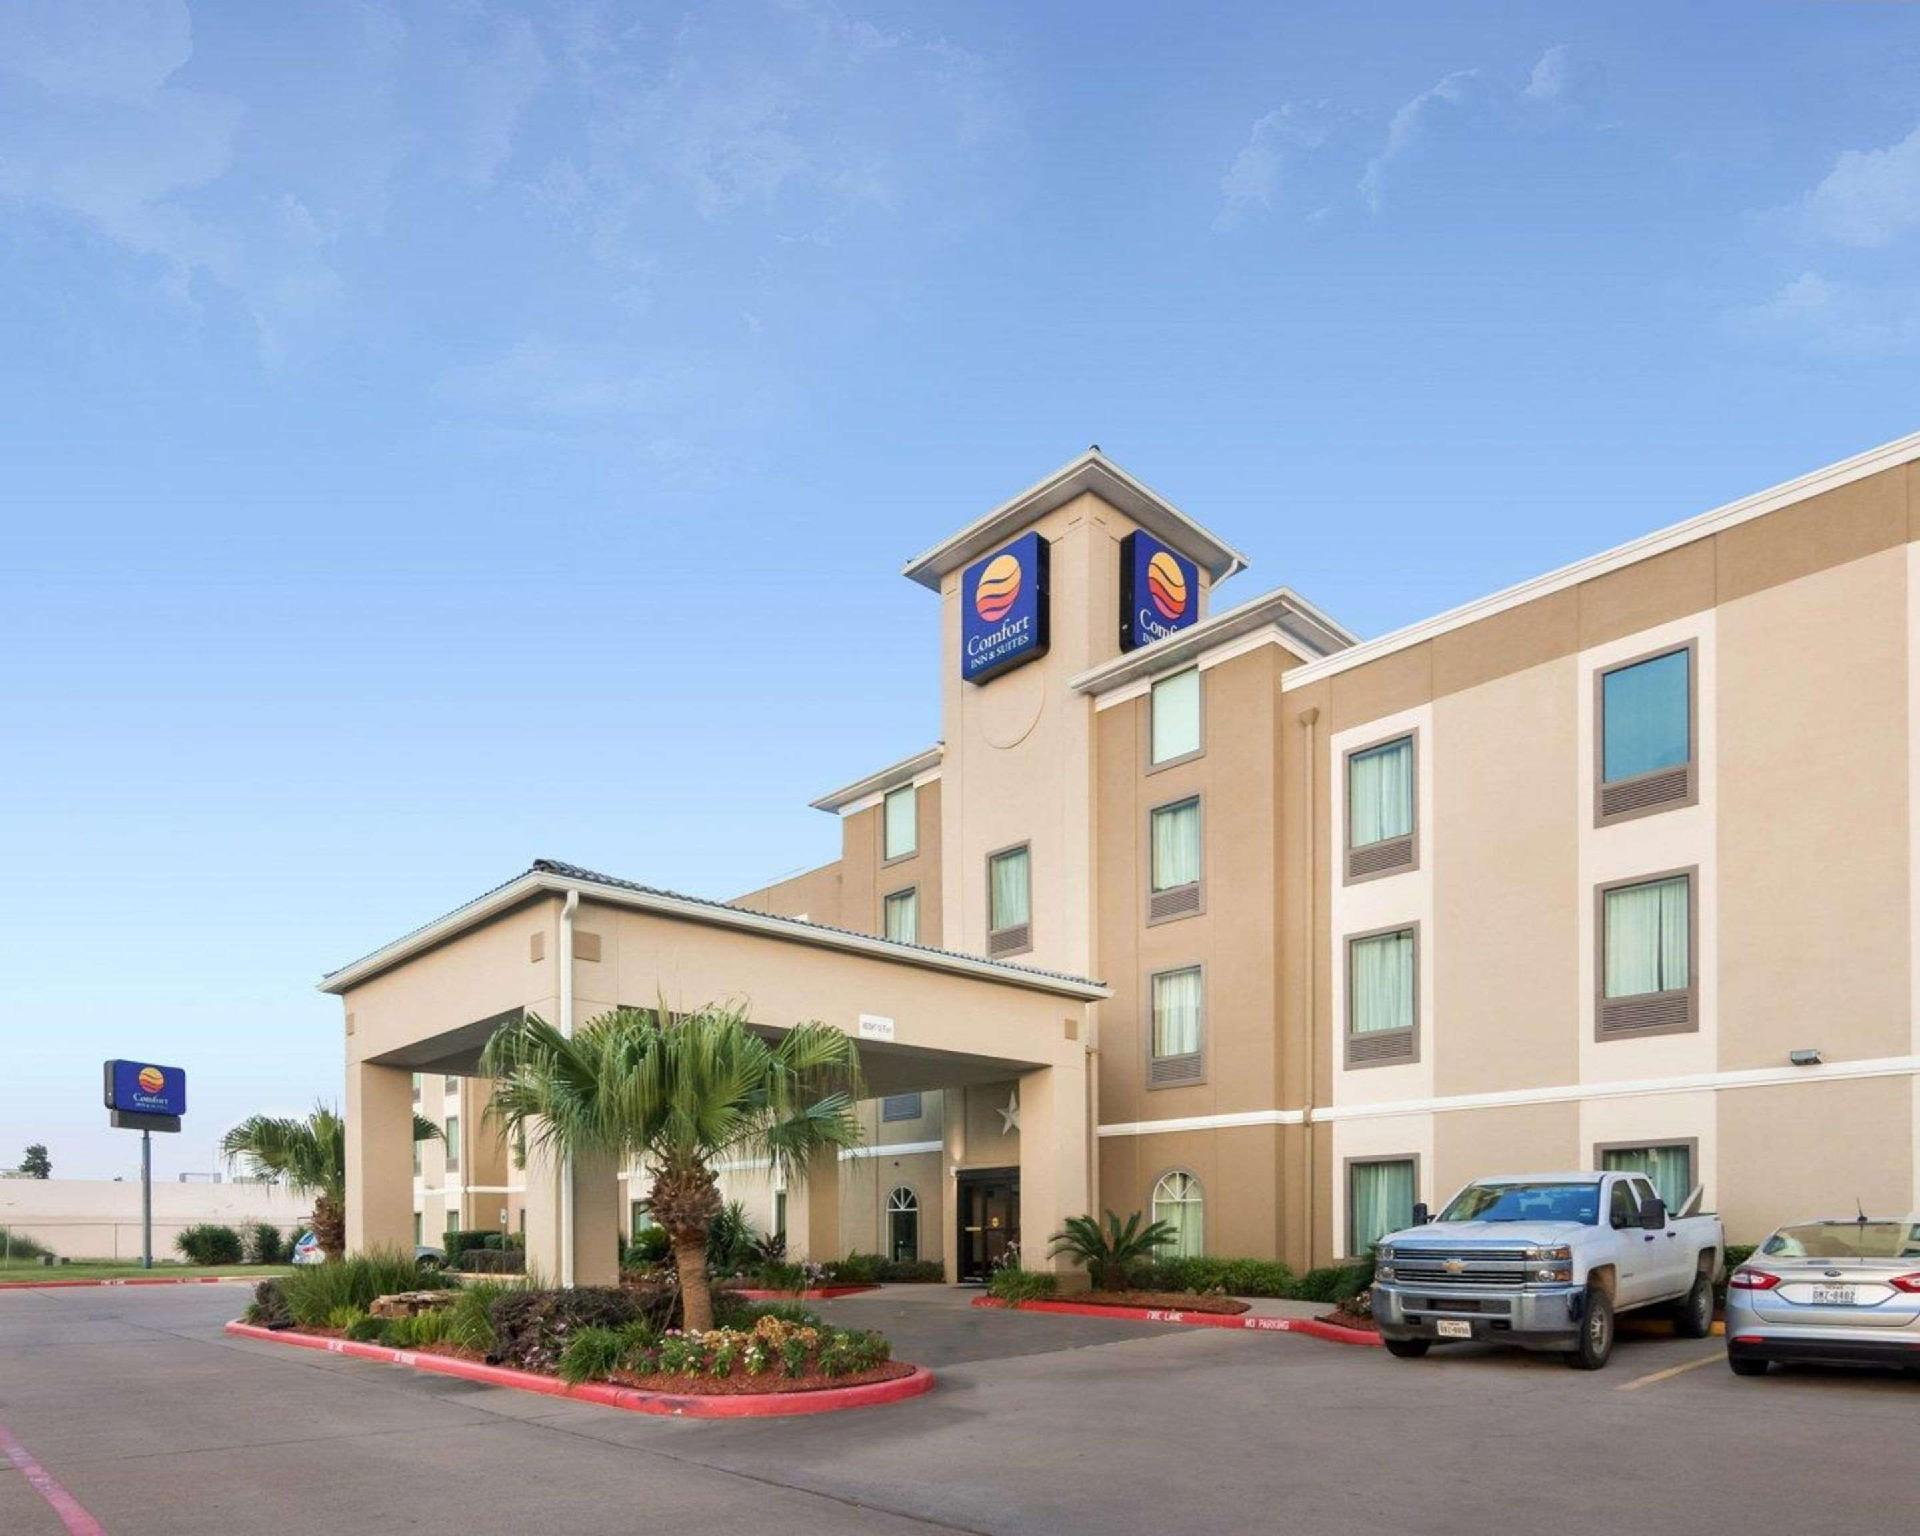 Comfort Inn & Suites FM1960 Champions Houston